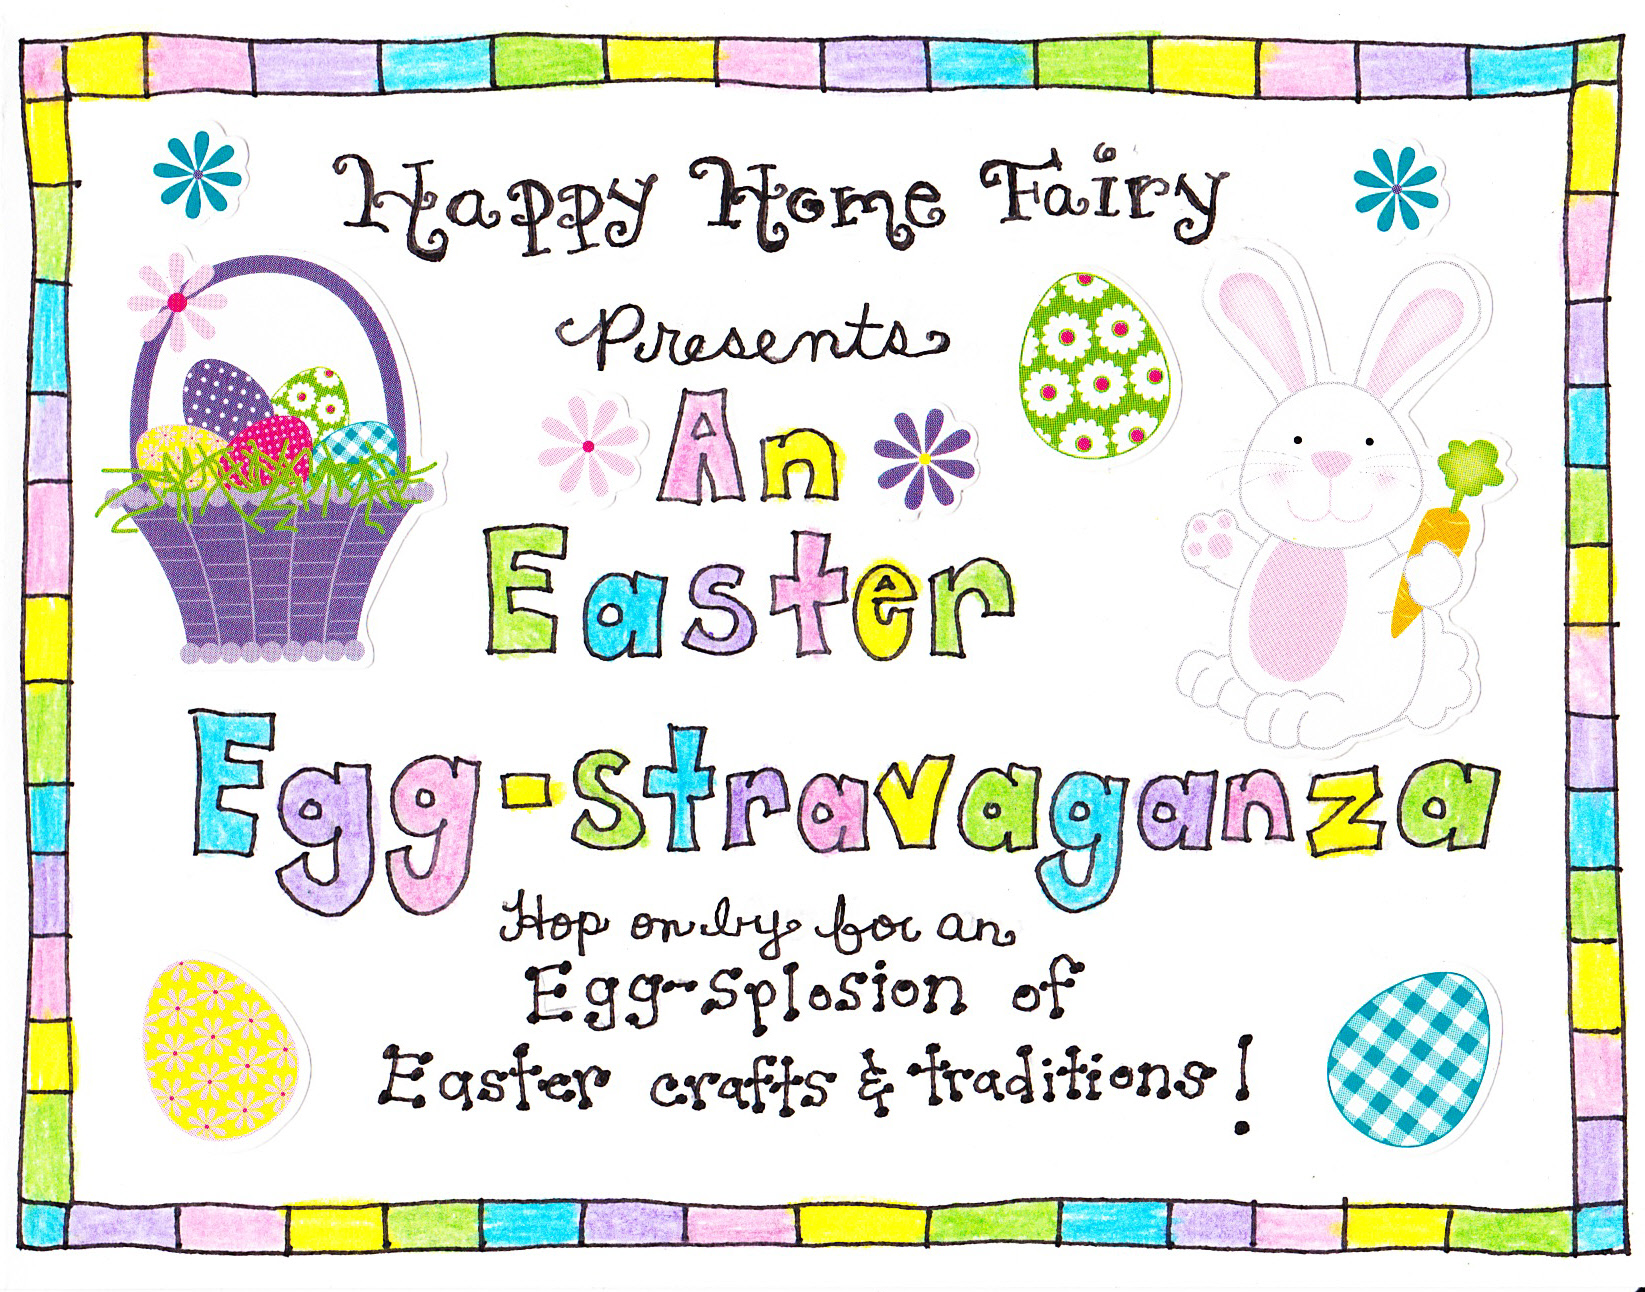 An easter basket for a mom happy home fairy an easter basket for a mom negle Image collections